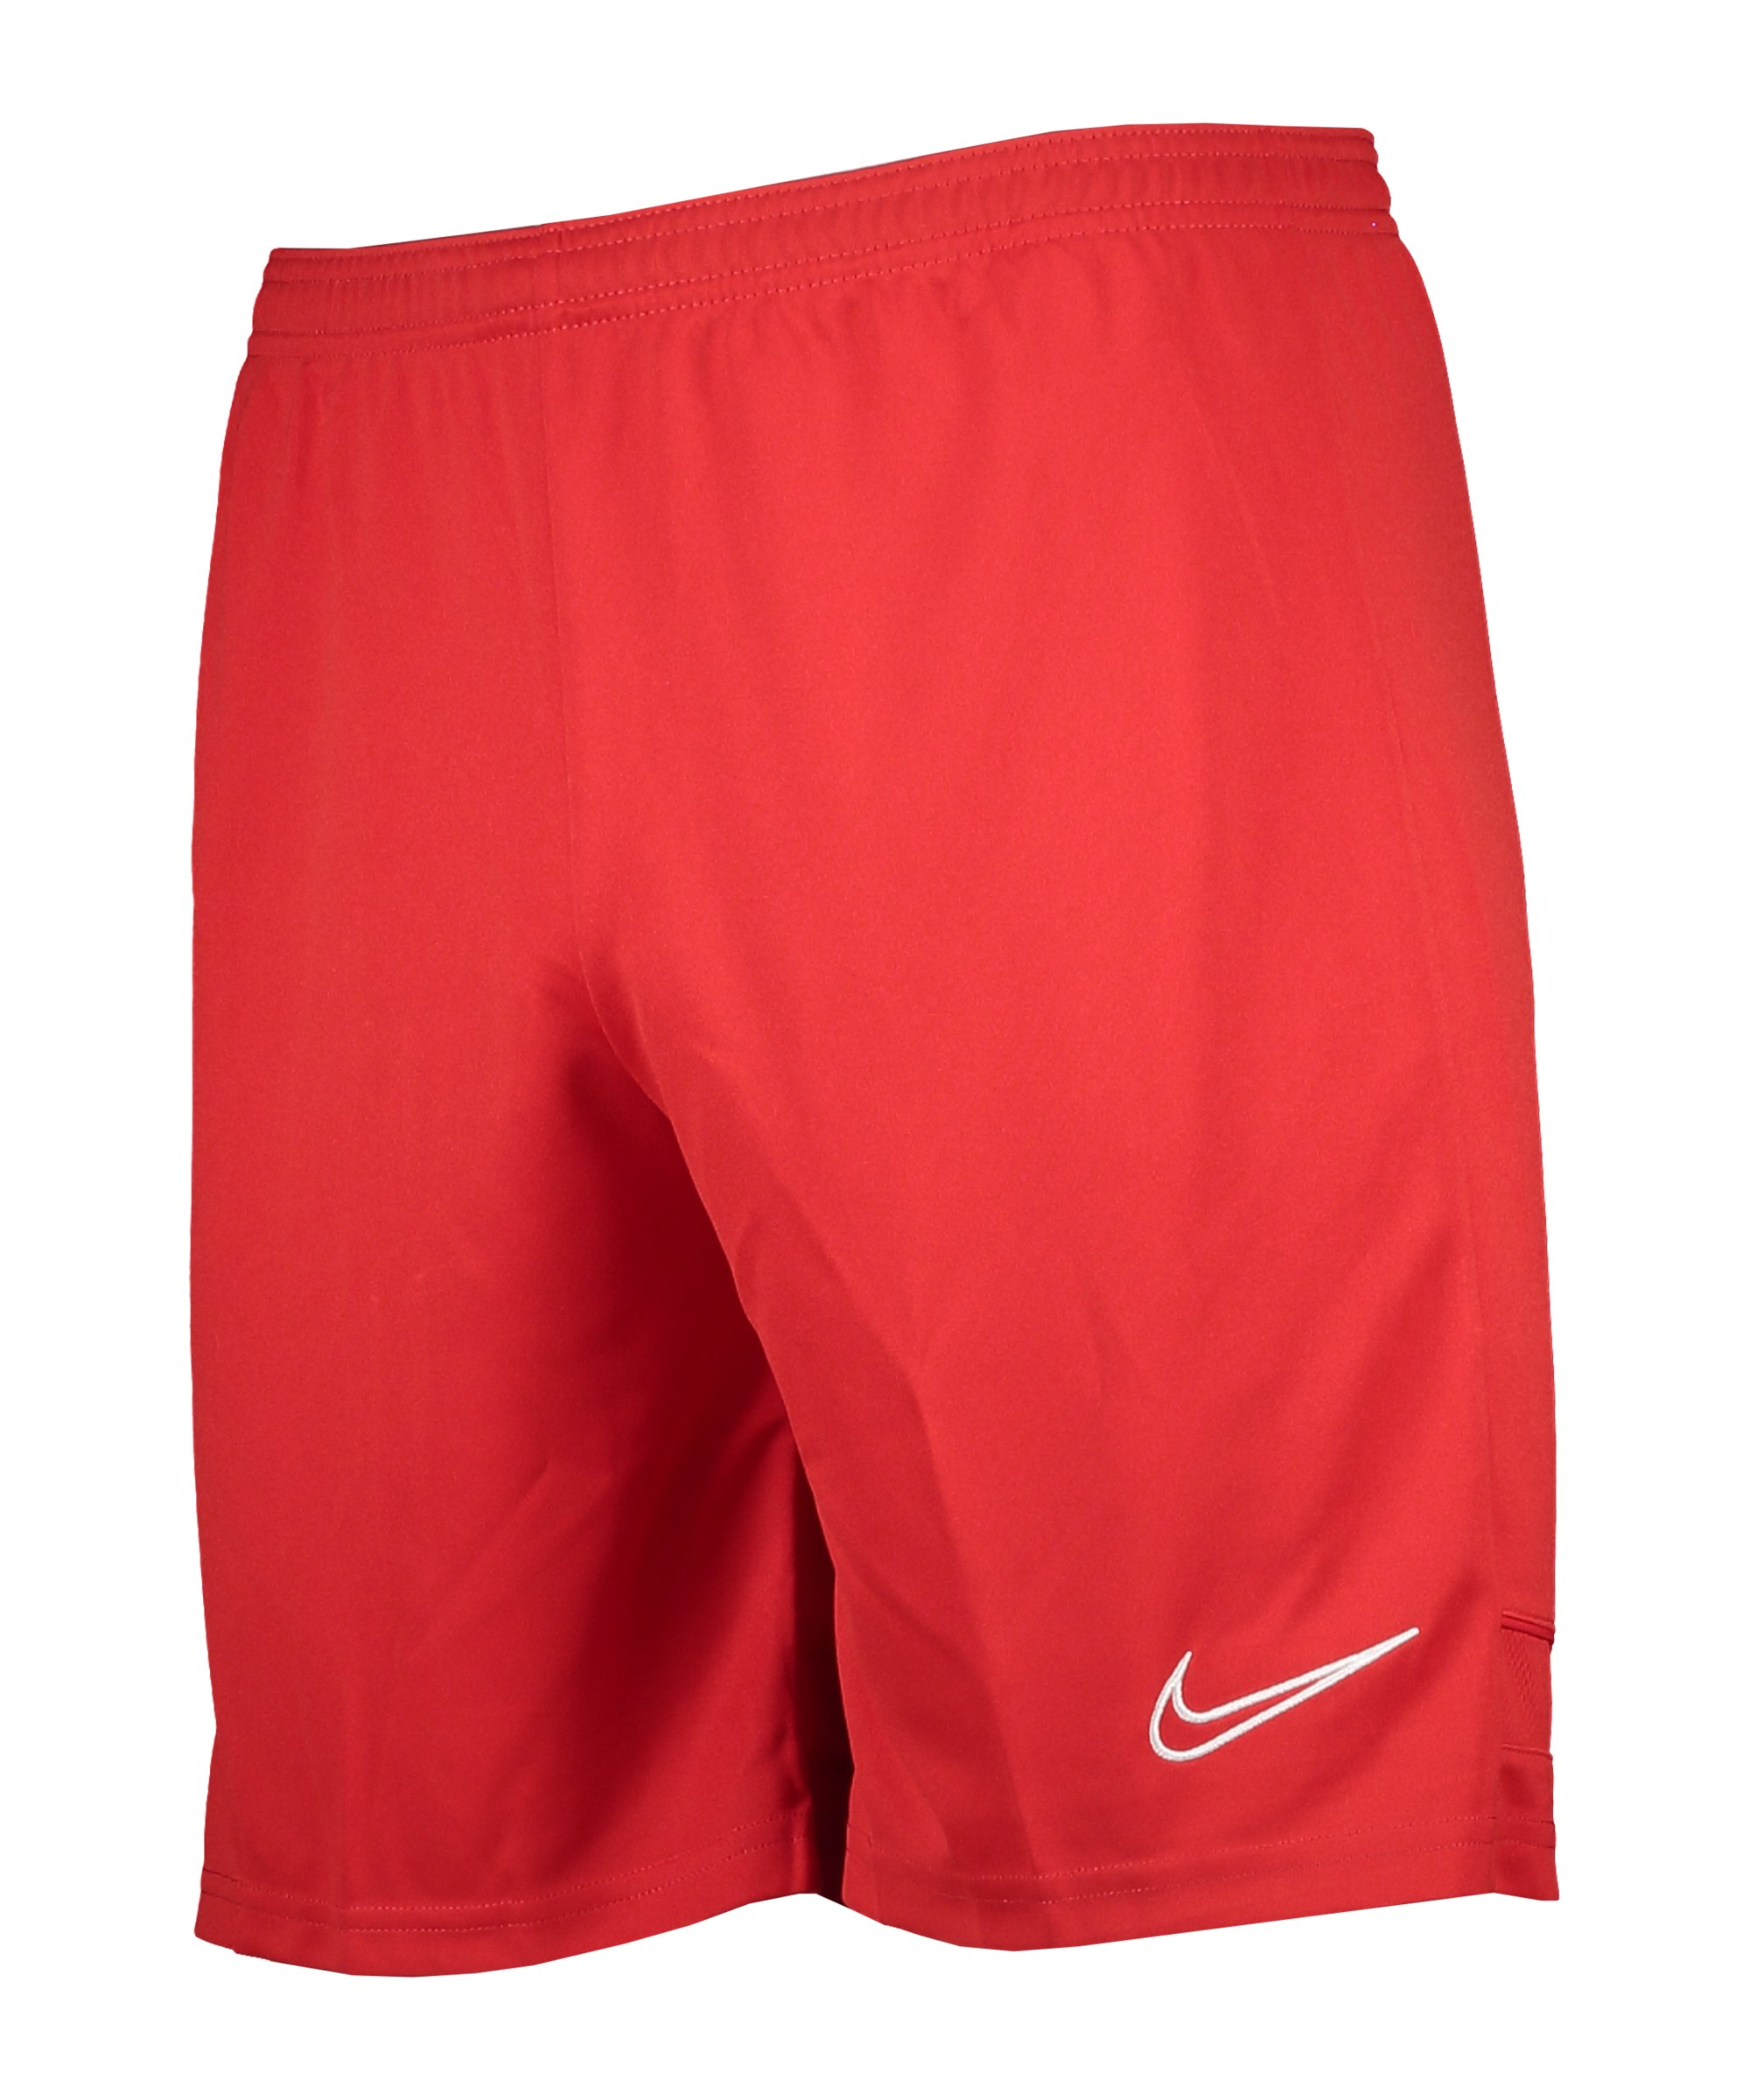 Nike Academy 21 Short Rot Weiss F657 - rot